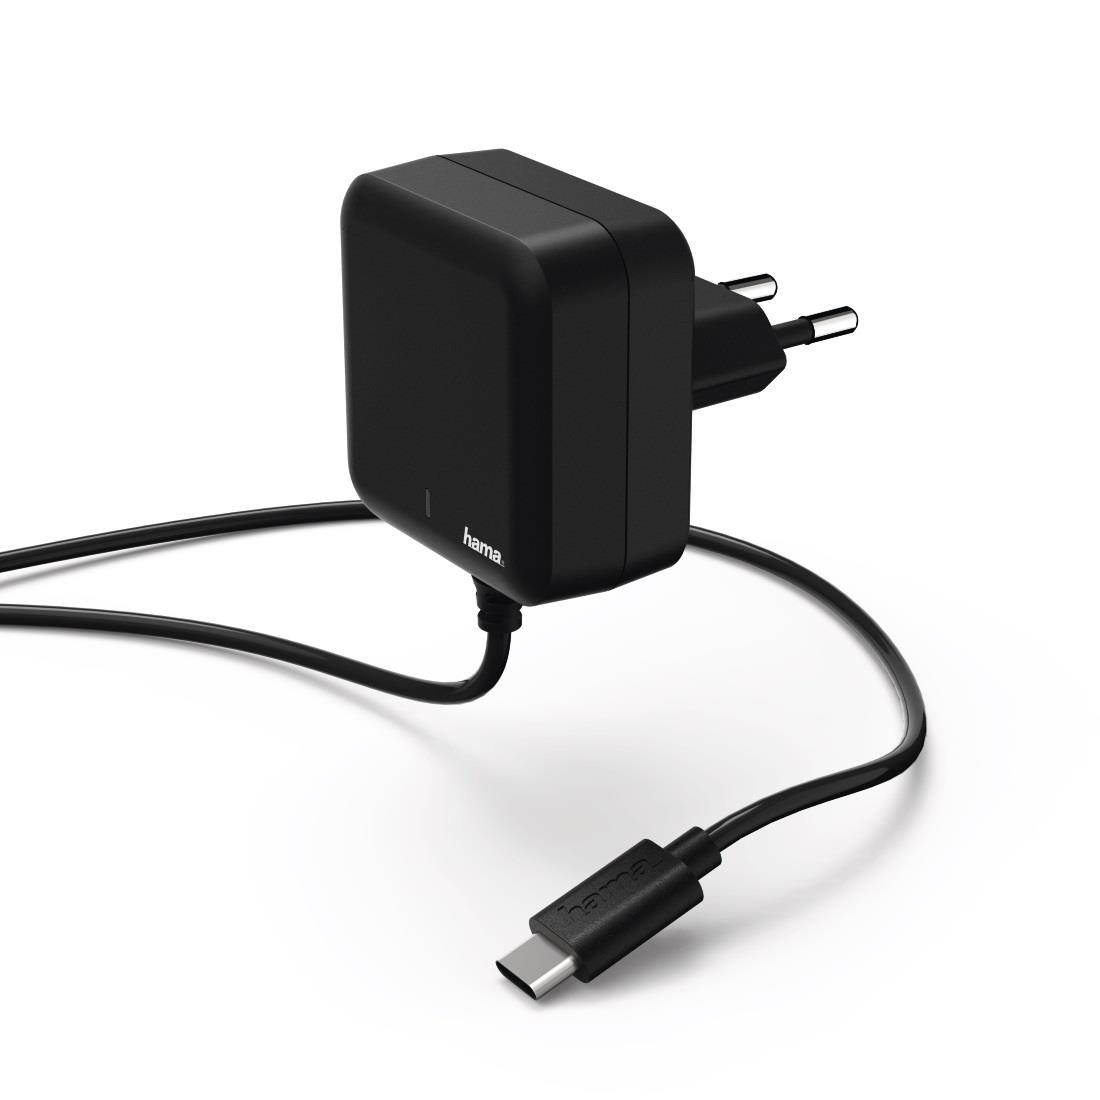 HAMA Charger USB Type-C power delivery